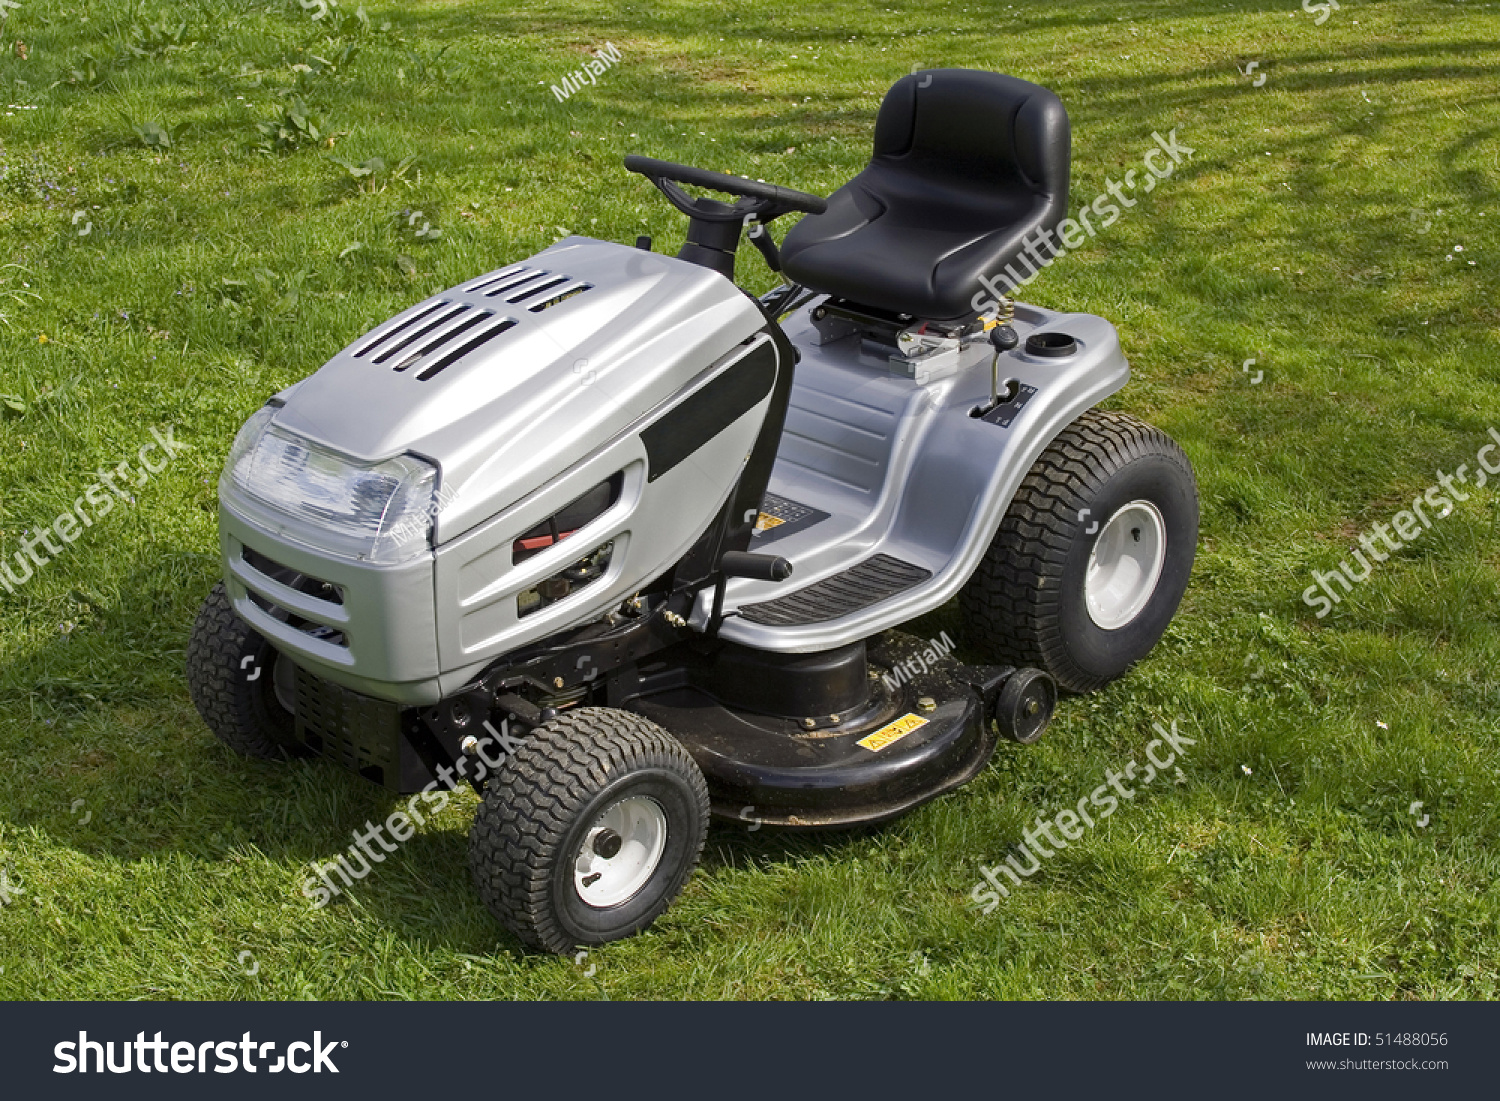 small tractor cutting grass all logos stock photo  small tractor for cutting grass all logos removed warning signs left